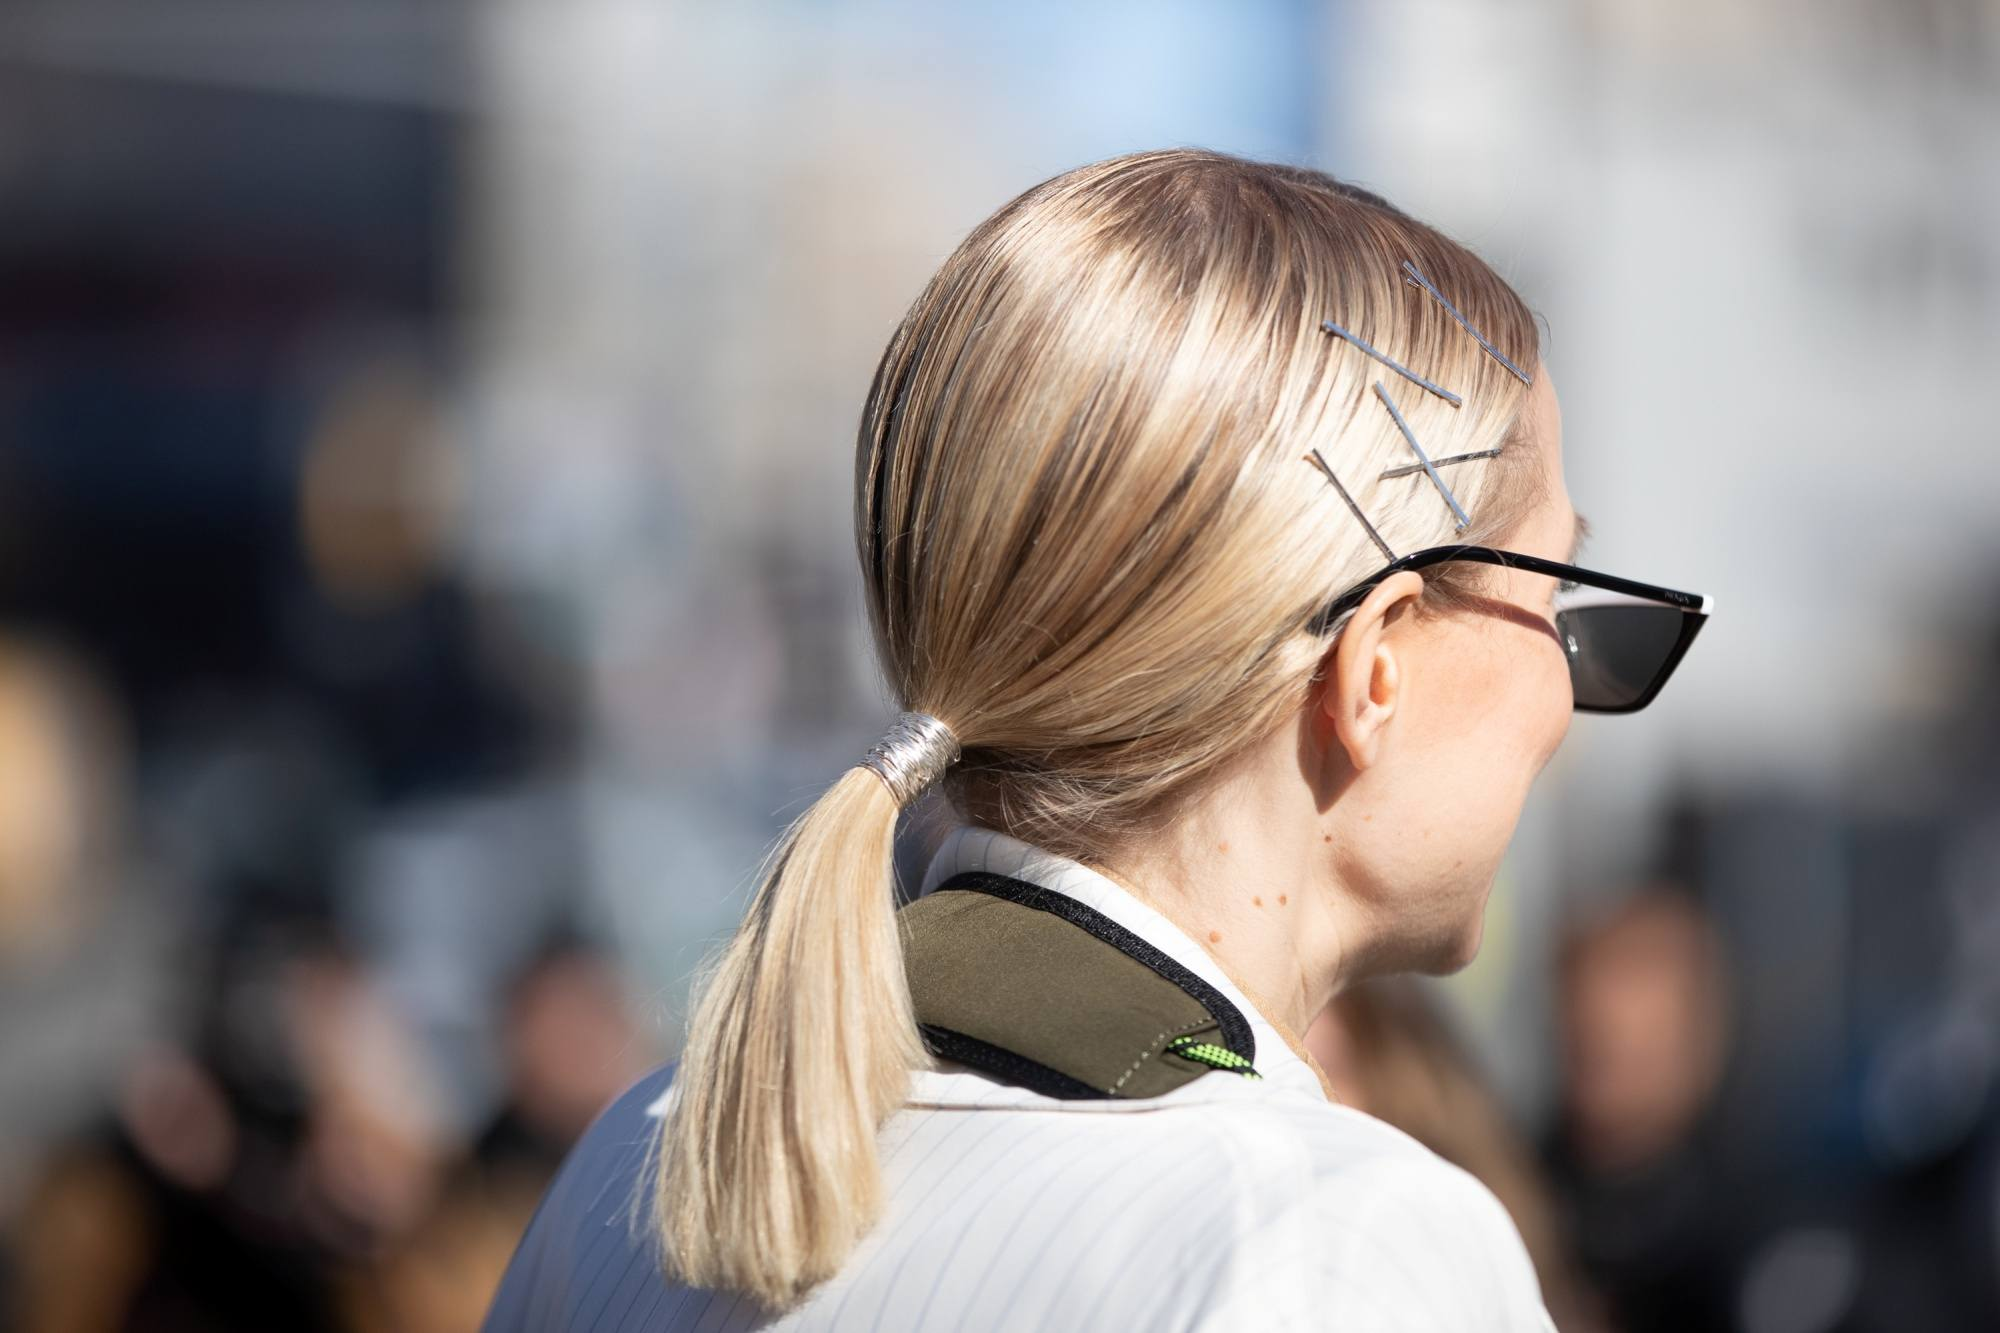 Sleek tied hair: Back side shot of a blonde woman with shoulder-length hair in low ponytail with bobby pins